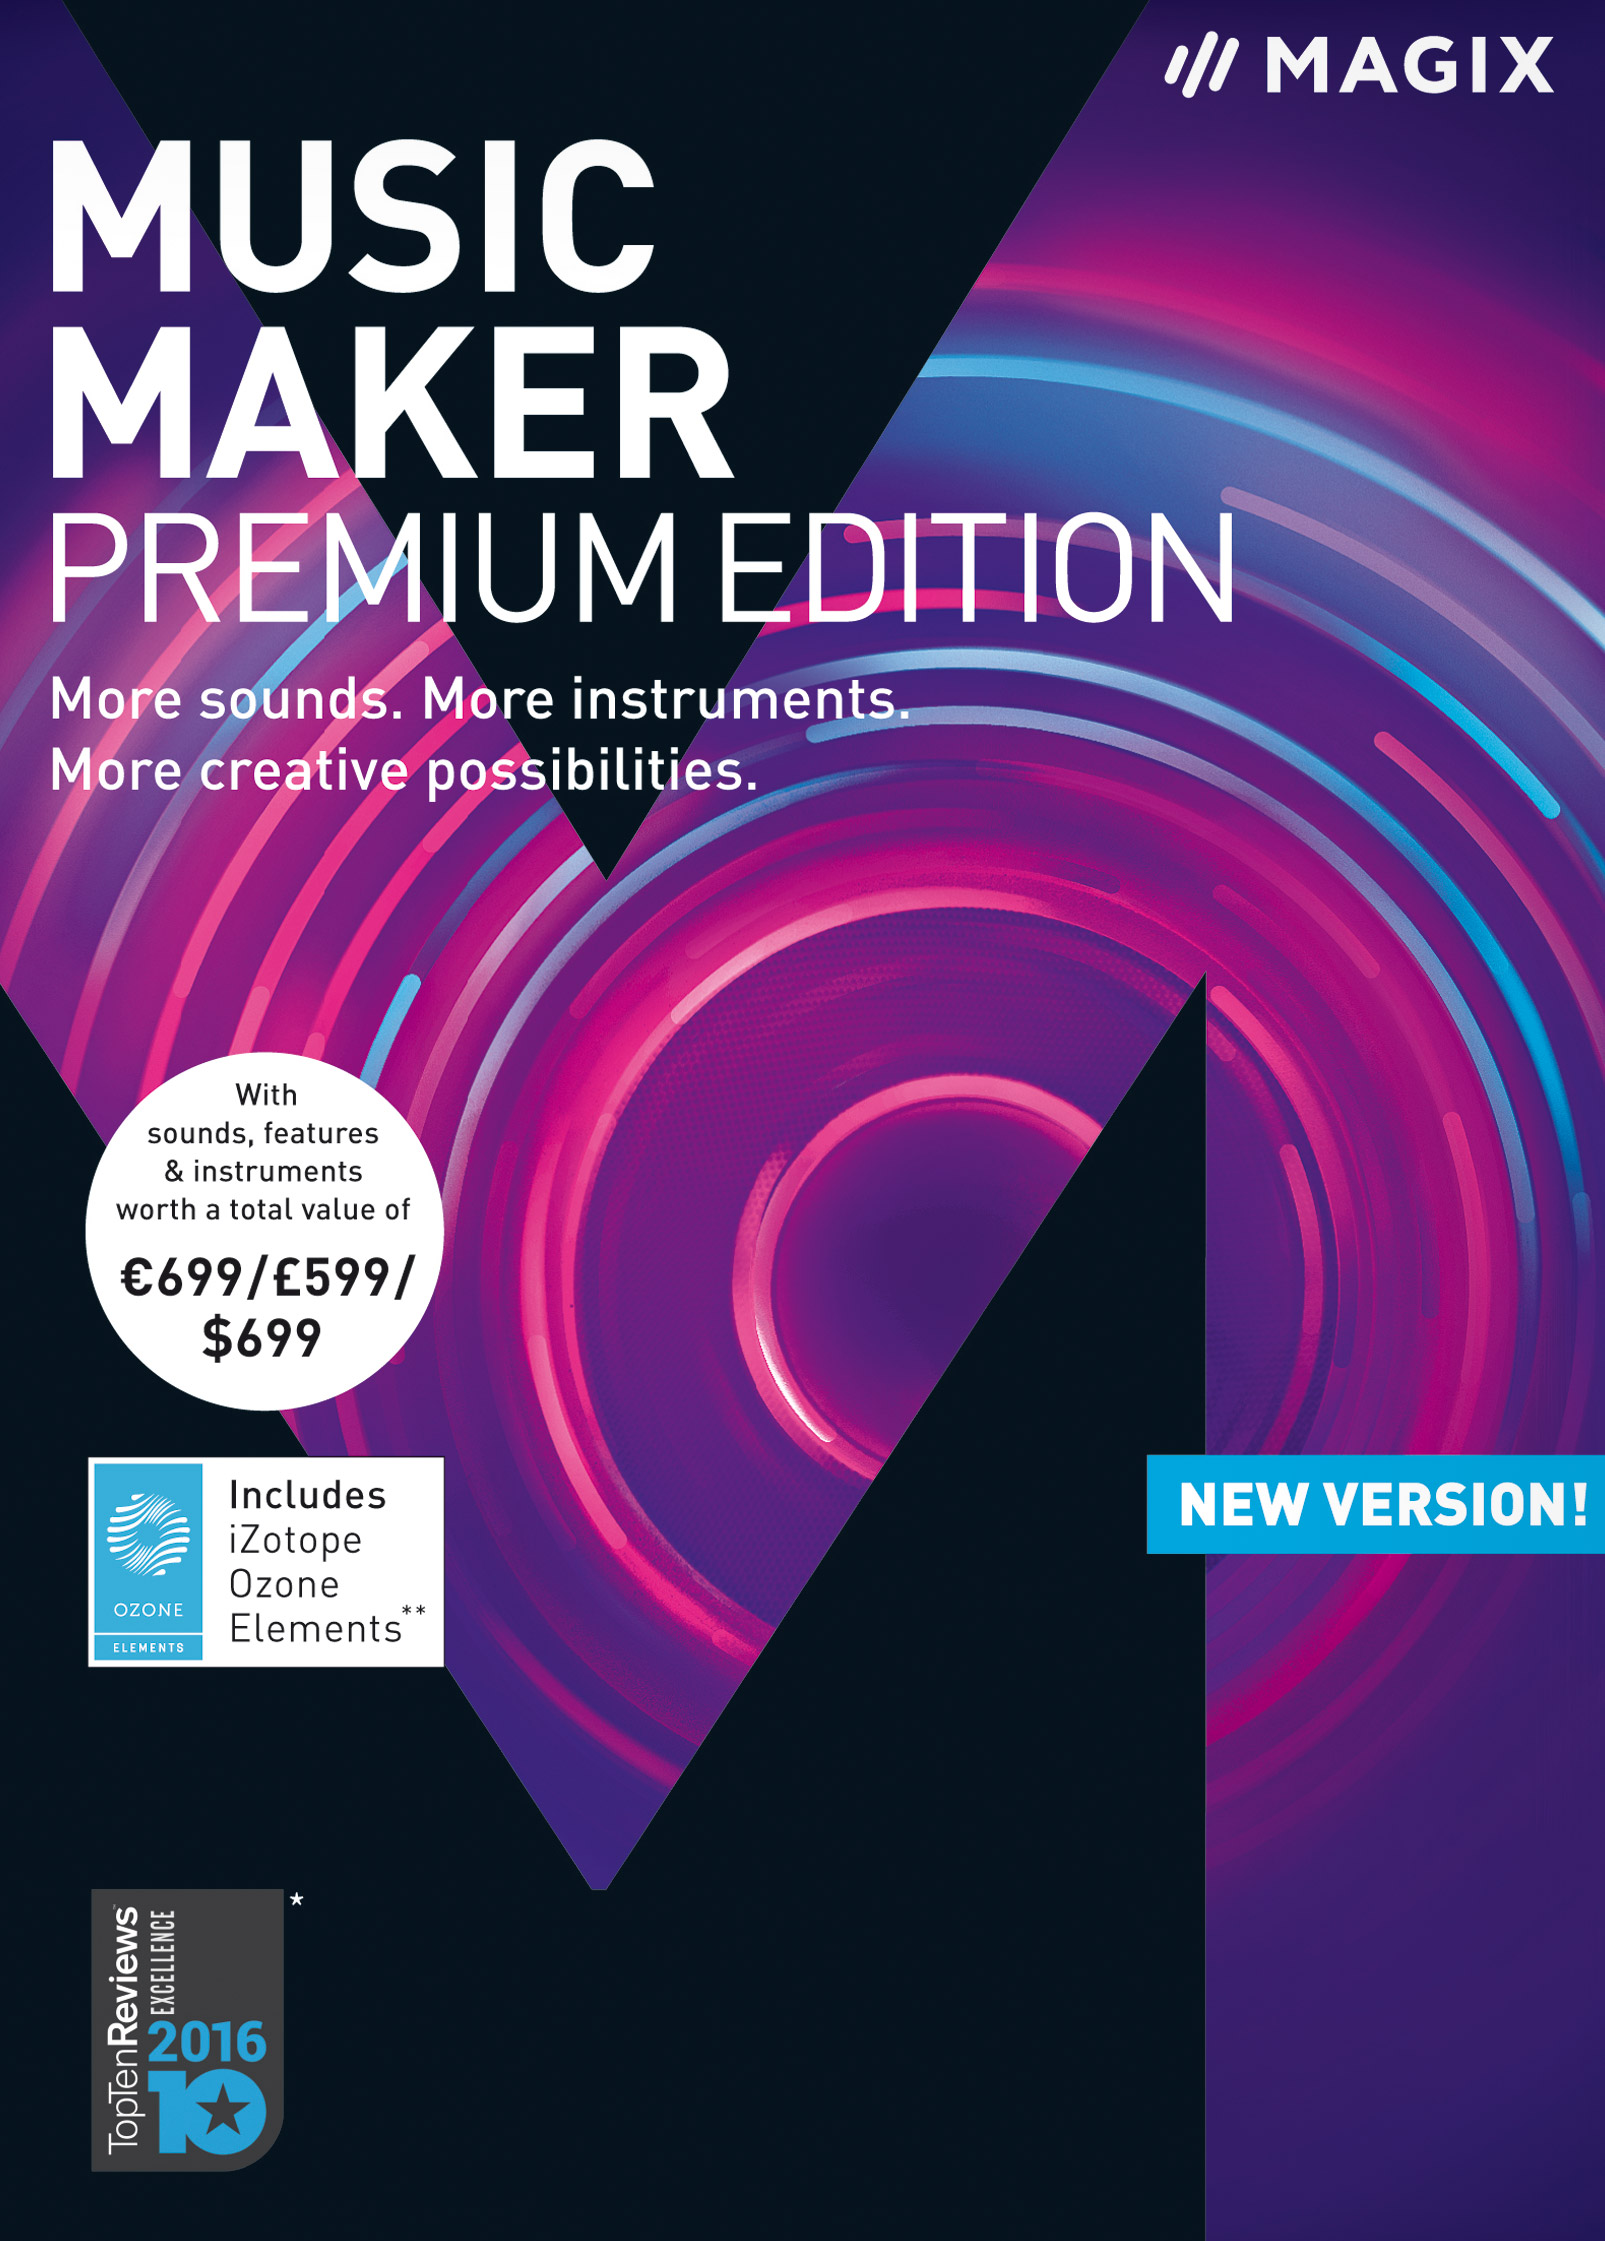 MAGIX Music Maker – 2018 Premium Edition – The audio software with more sounds, instruments and creative options (Option Digital Mixer)